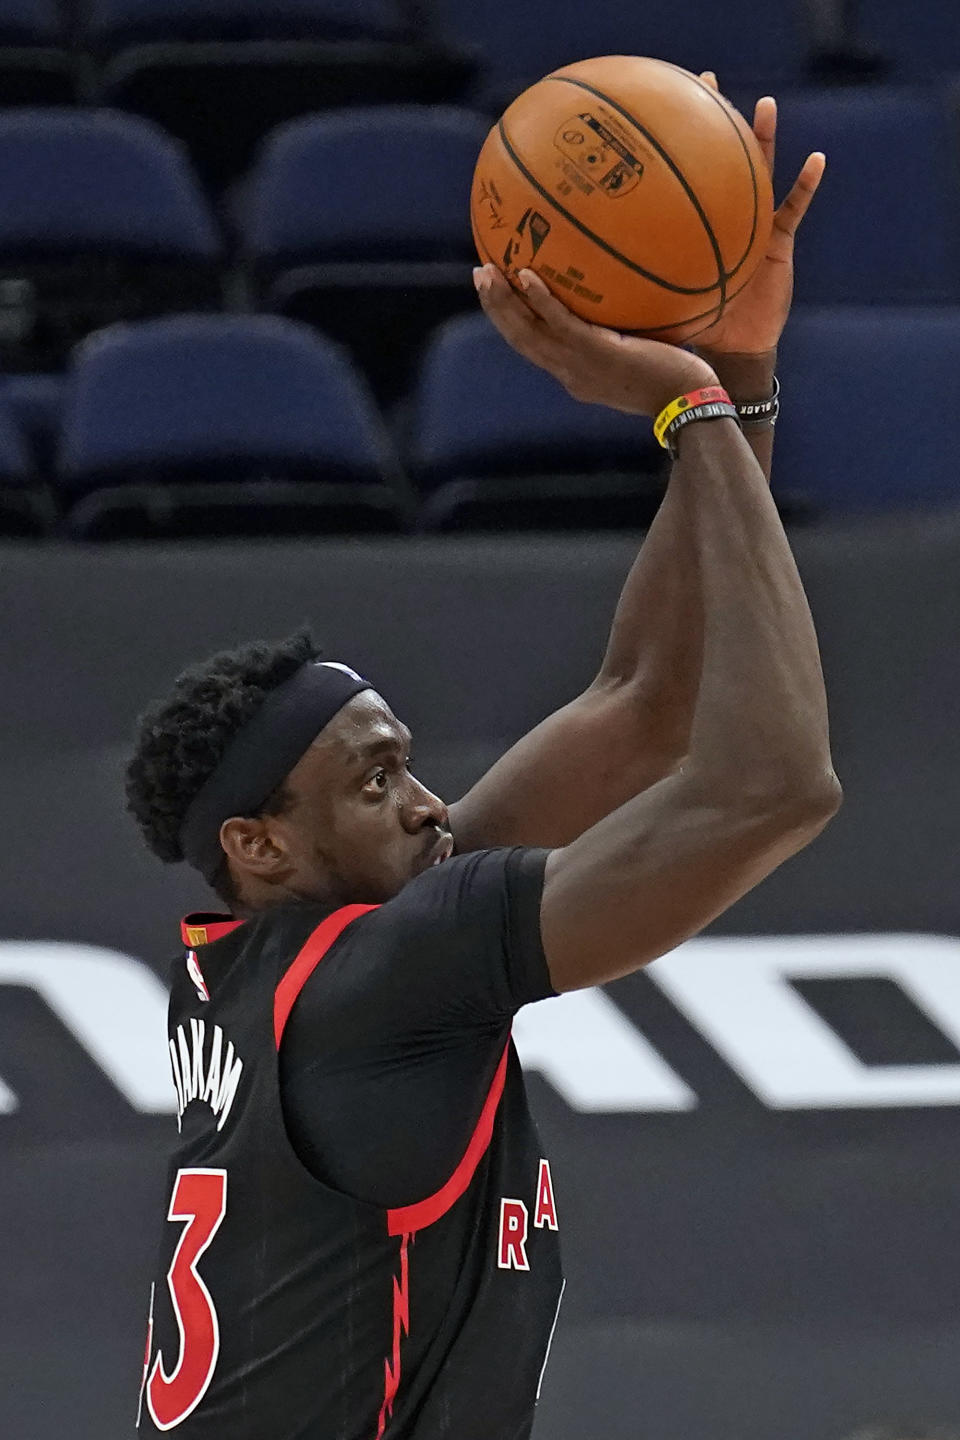 Toronto Raptors forward Pascal Siakam (43) shoots against the Philadelphia 76ers during the second half of an NBA basketball game Sunday, Feb. 21, 2021, in Tampa, Fla. (AP Photo/Chris O'Meara)